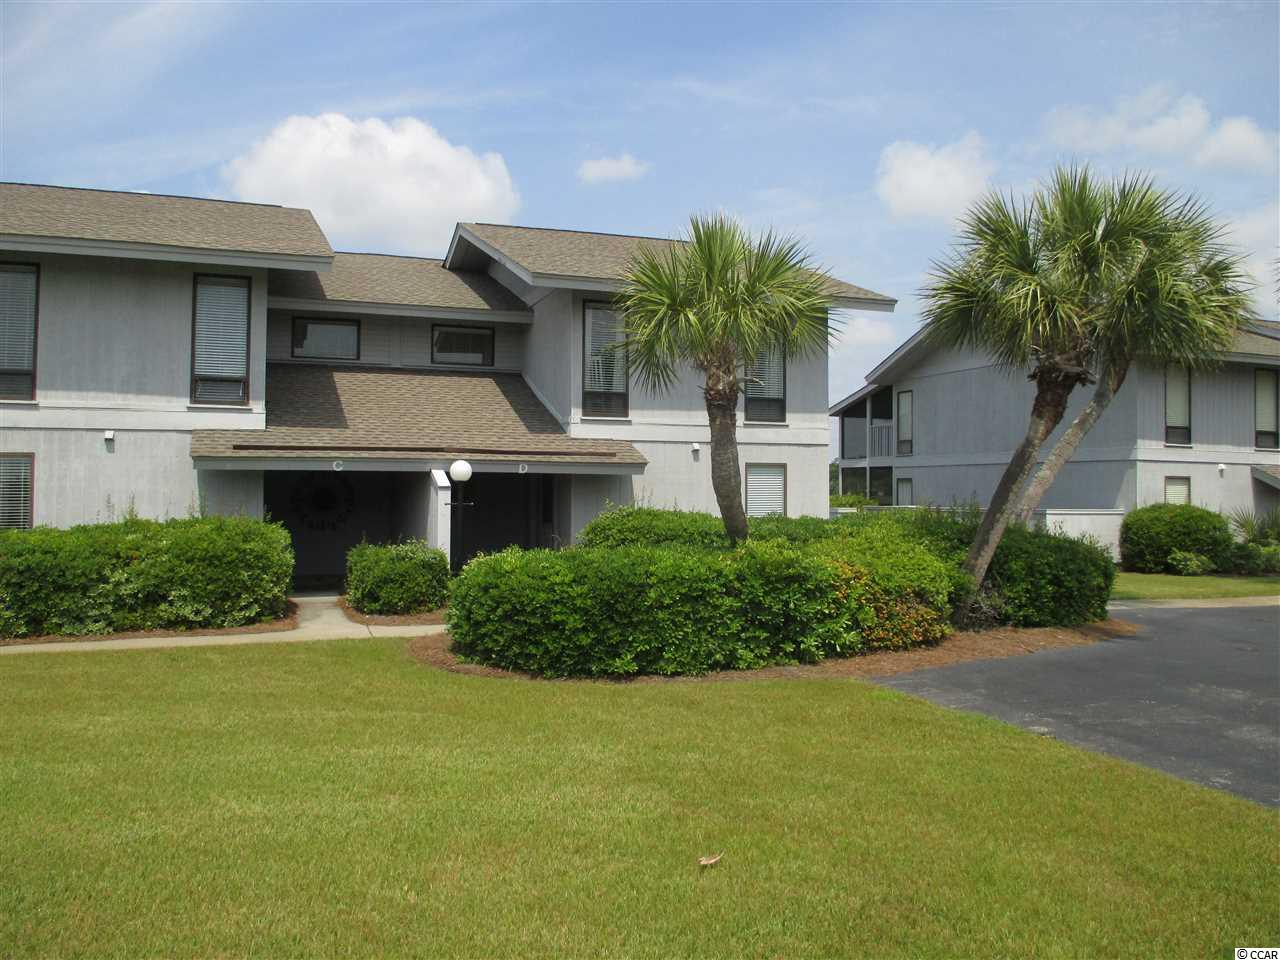 Condo / Townhome / Villa for Sale at 9D Inlet Point Drive 9D Inlet Point Drive Pawleys Island, South Carolina 29585 United States